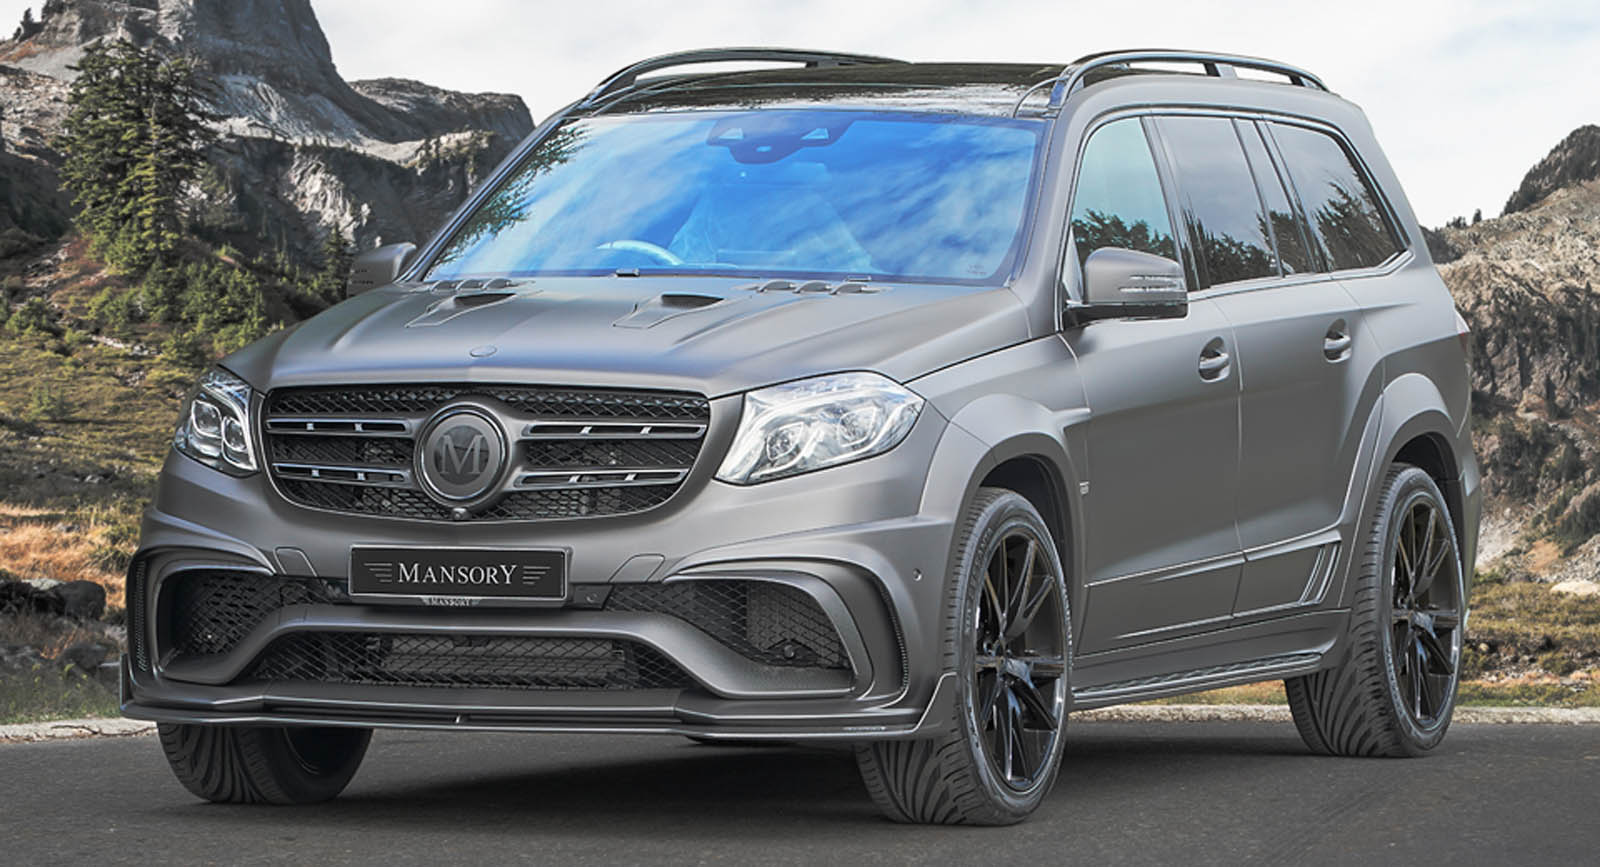 mansory 39 s widebody mercedes amg gls 63 slams 830 hp to the road. Black Bedroom Furniture Sets. Home Design Ideas